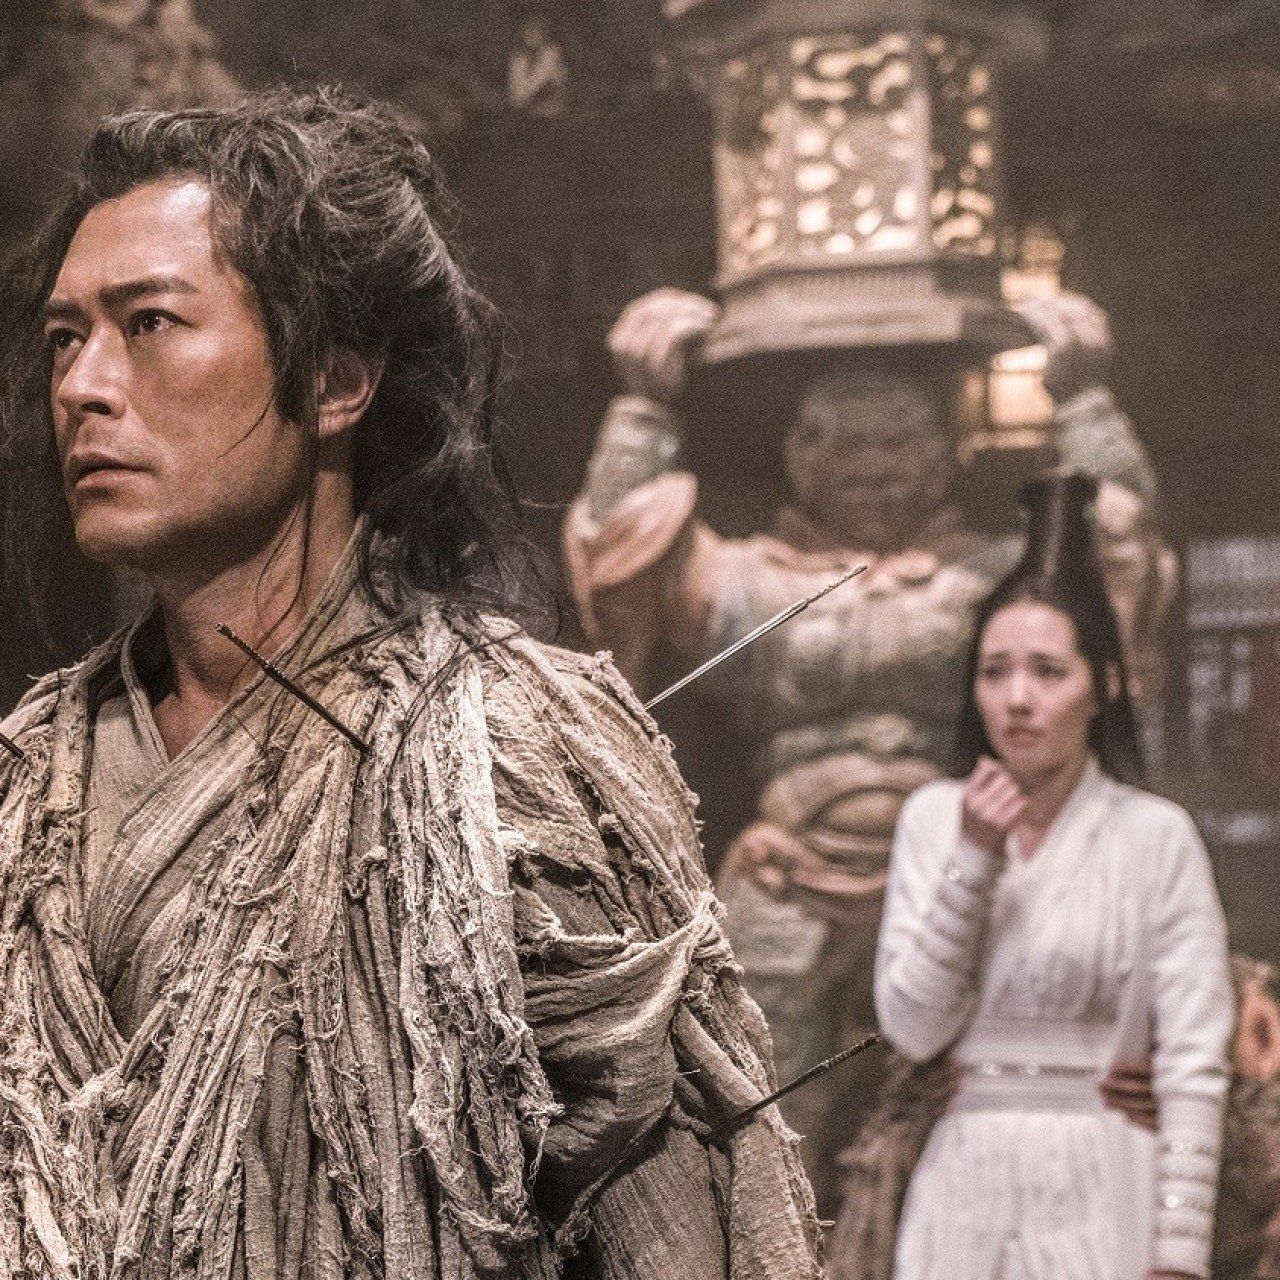 Kung Fu Monster film review: Louis Koo on autopilot in unfunny blend